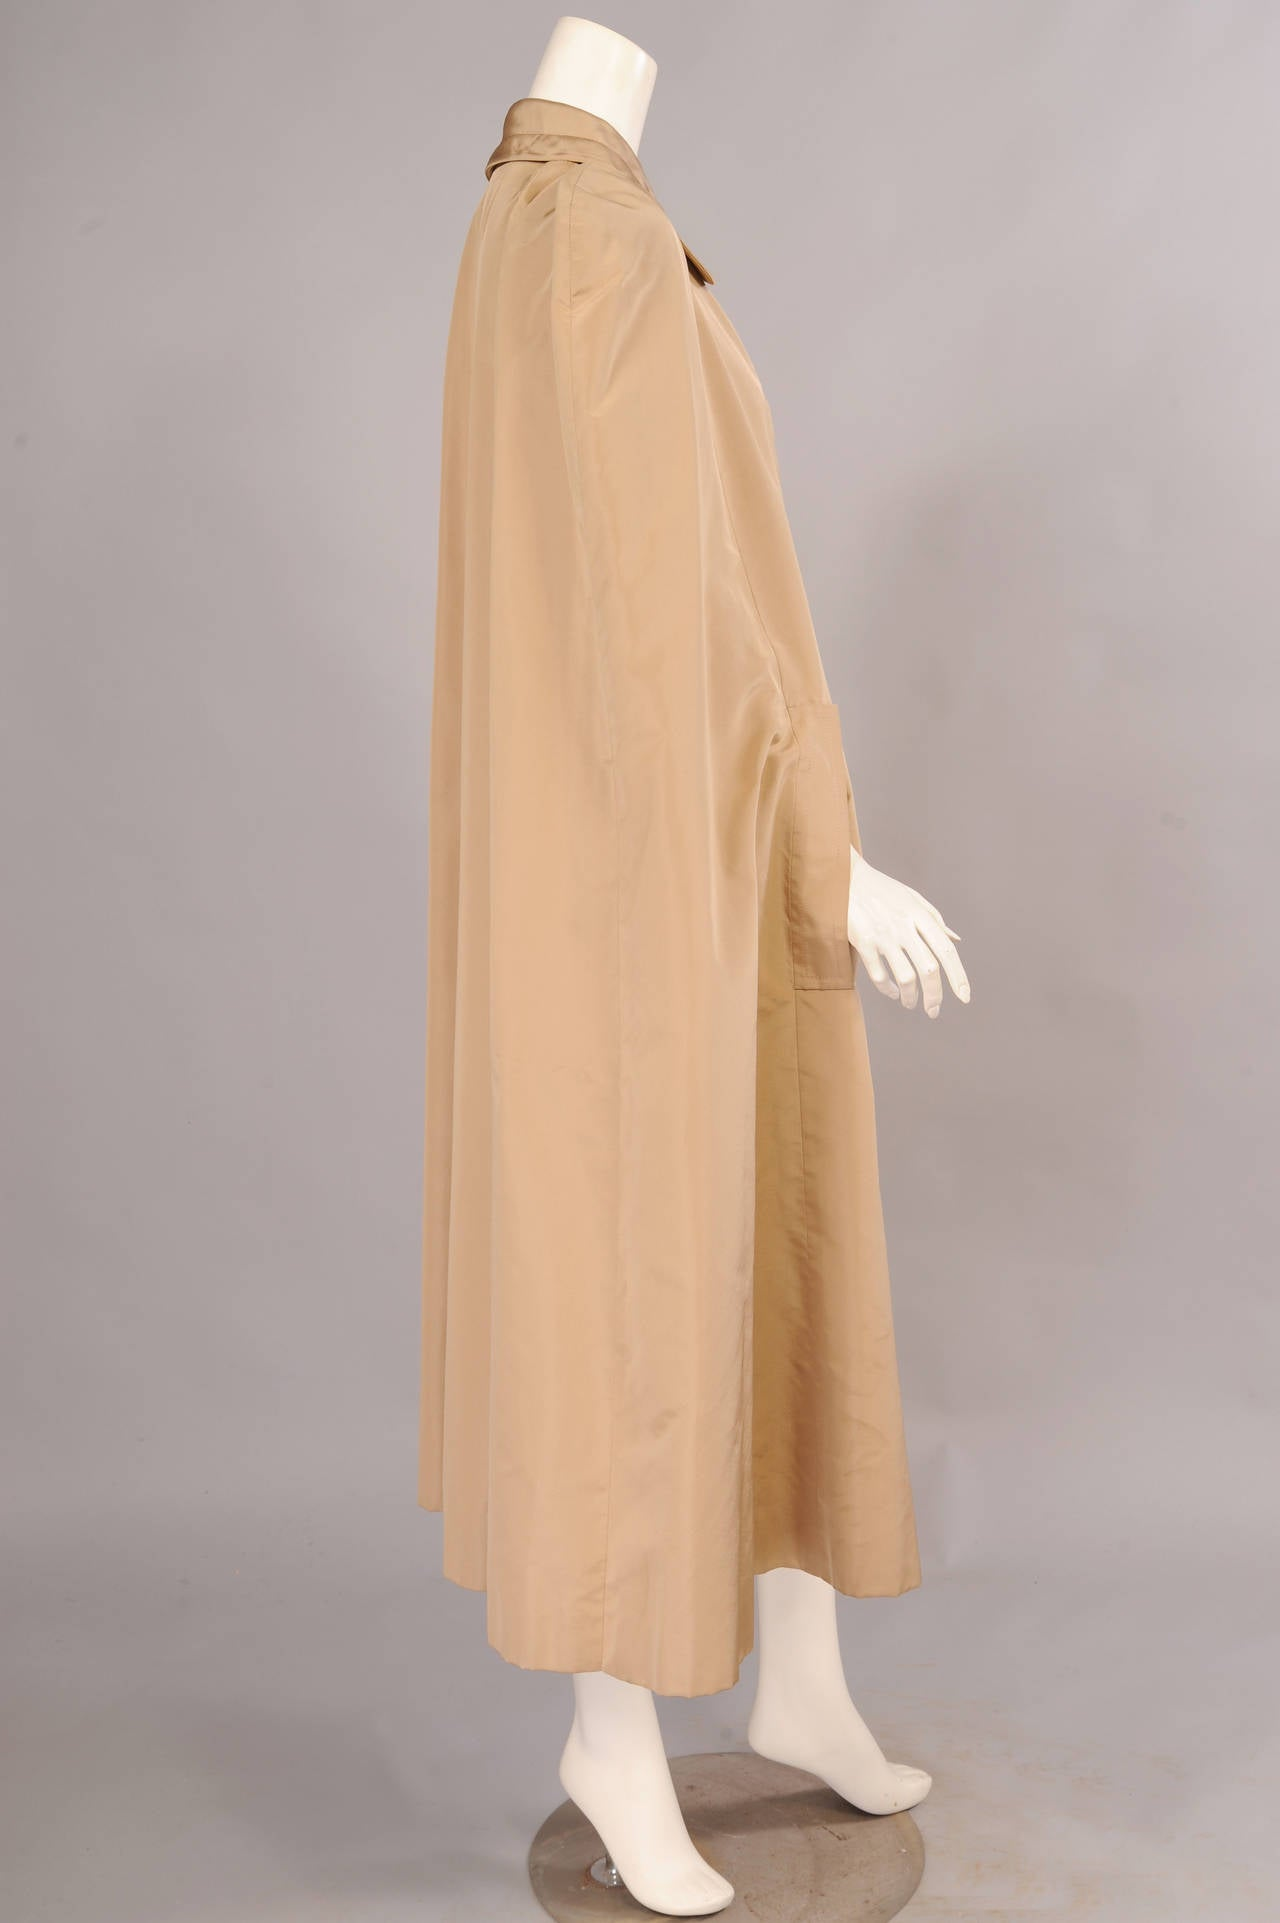 Classic and elegant, this silk faille cape has a hook and eye closure and two openings for your arms. It is fully lined in matching silk and bears the couture label as well as remnants of the runway label. It is in excellent condition. One size fits